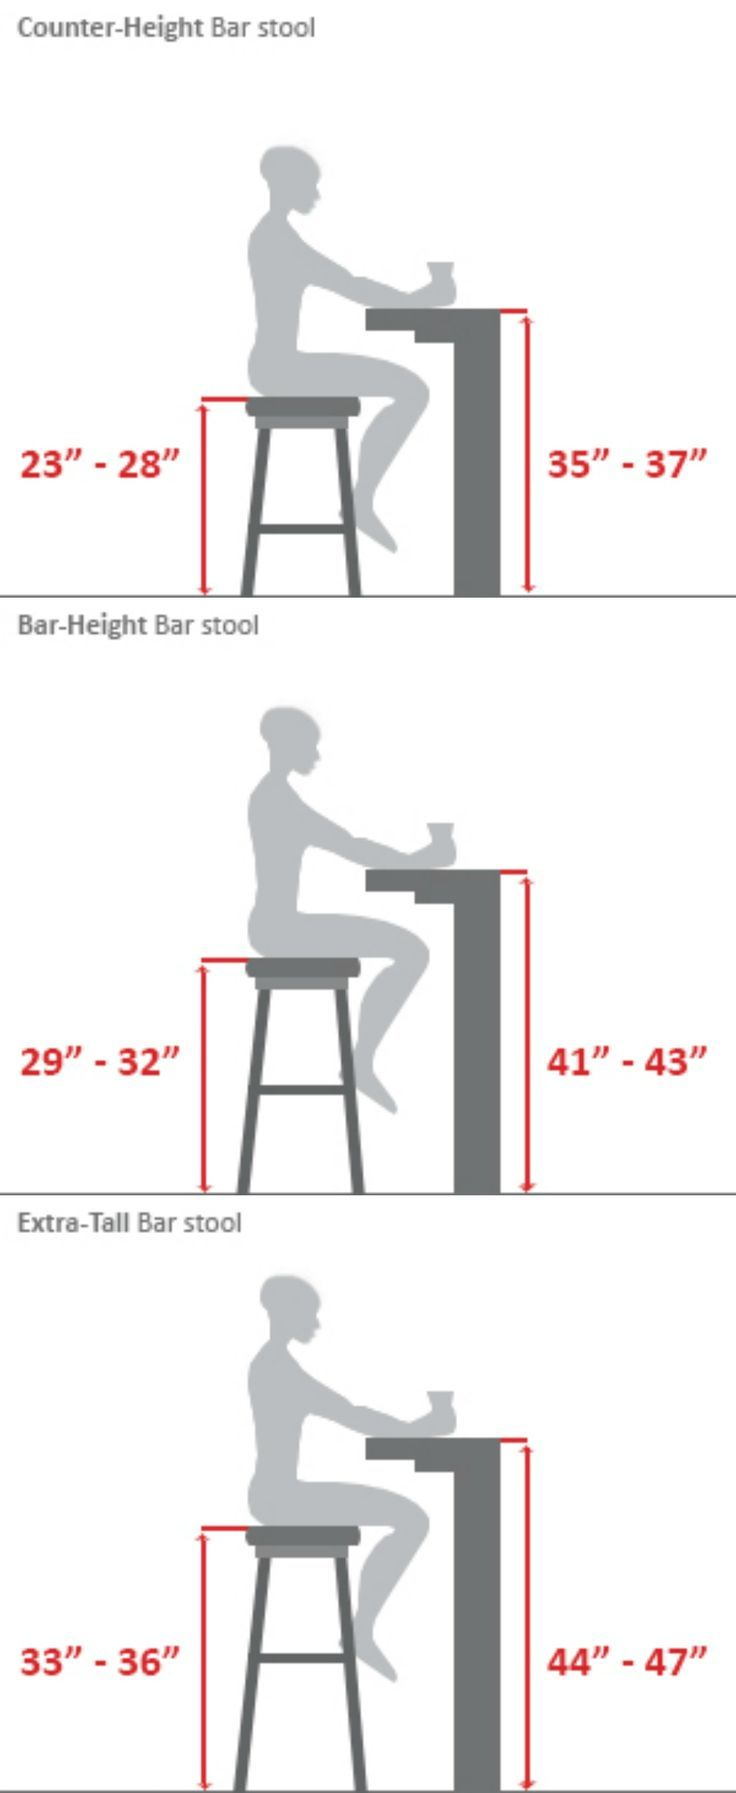 Bar Stool Ing Guide Or The Builder S When Building Desks Tables Bars These Measurements Come In Handy Design Interiordesign